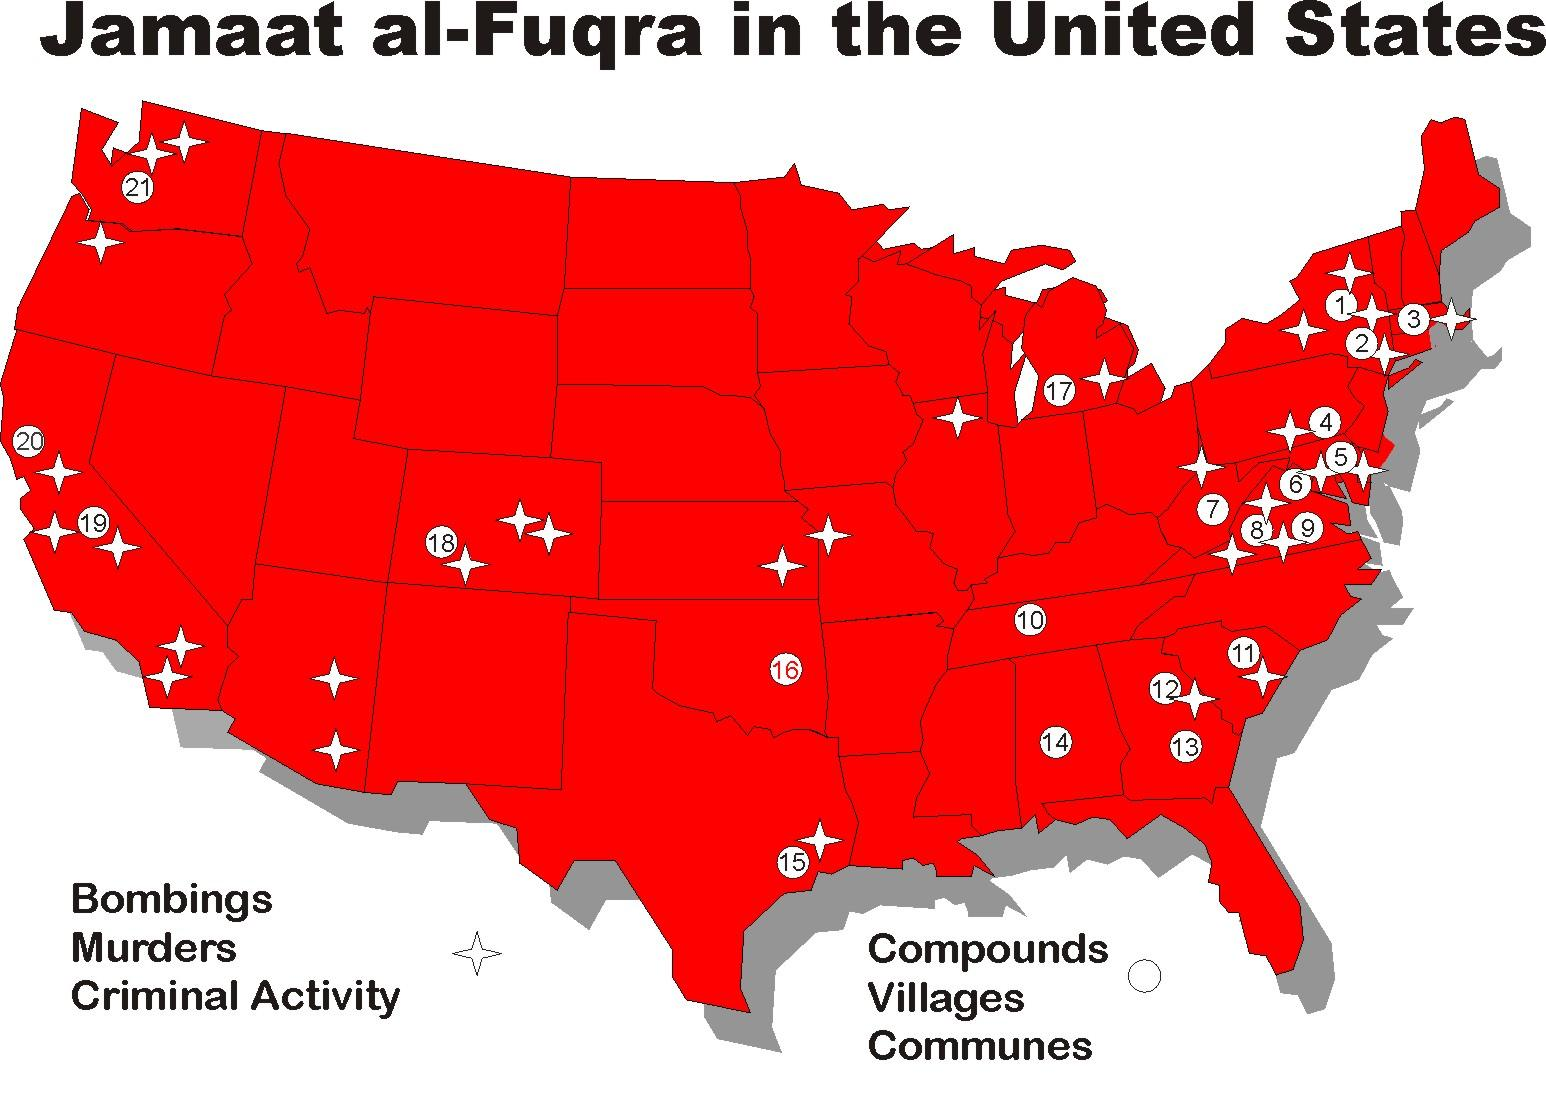 Map Terrorist Training Camps In The USA Battlefield America - Maps where jhadist are lockated in us